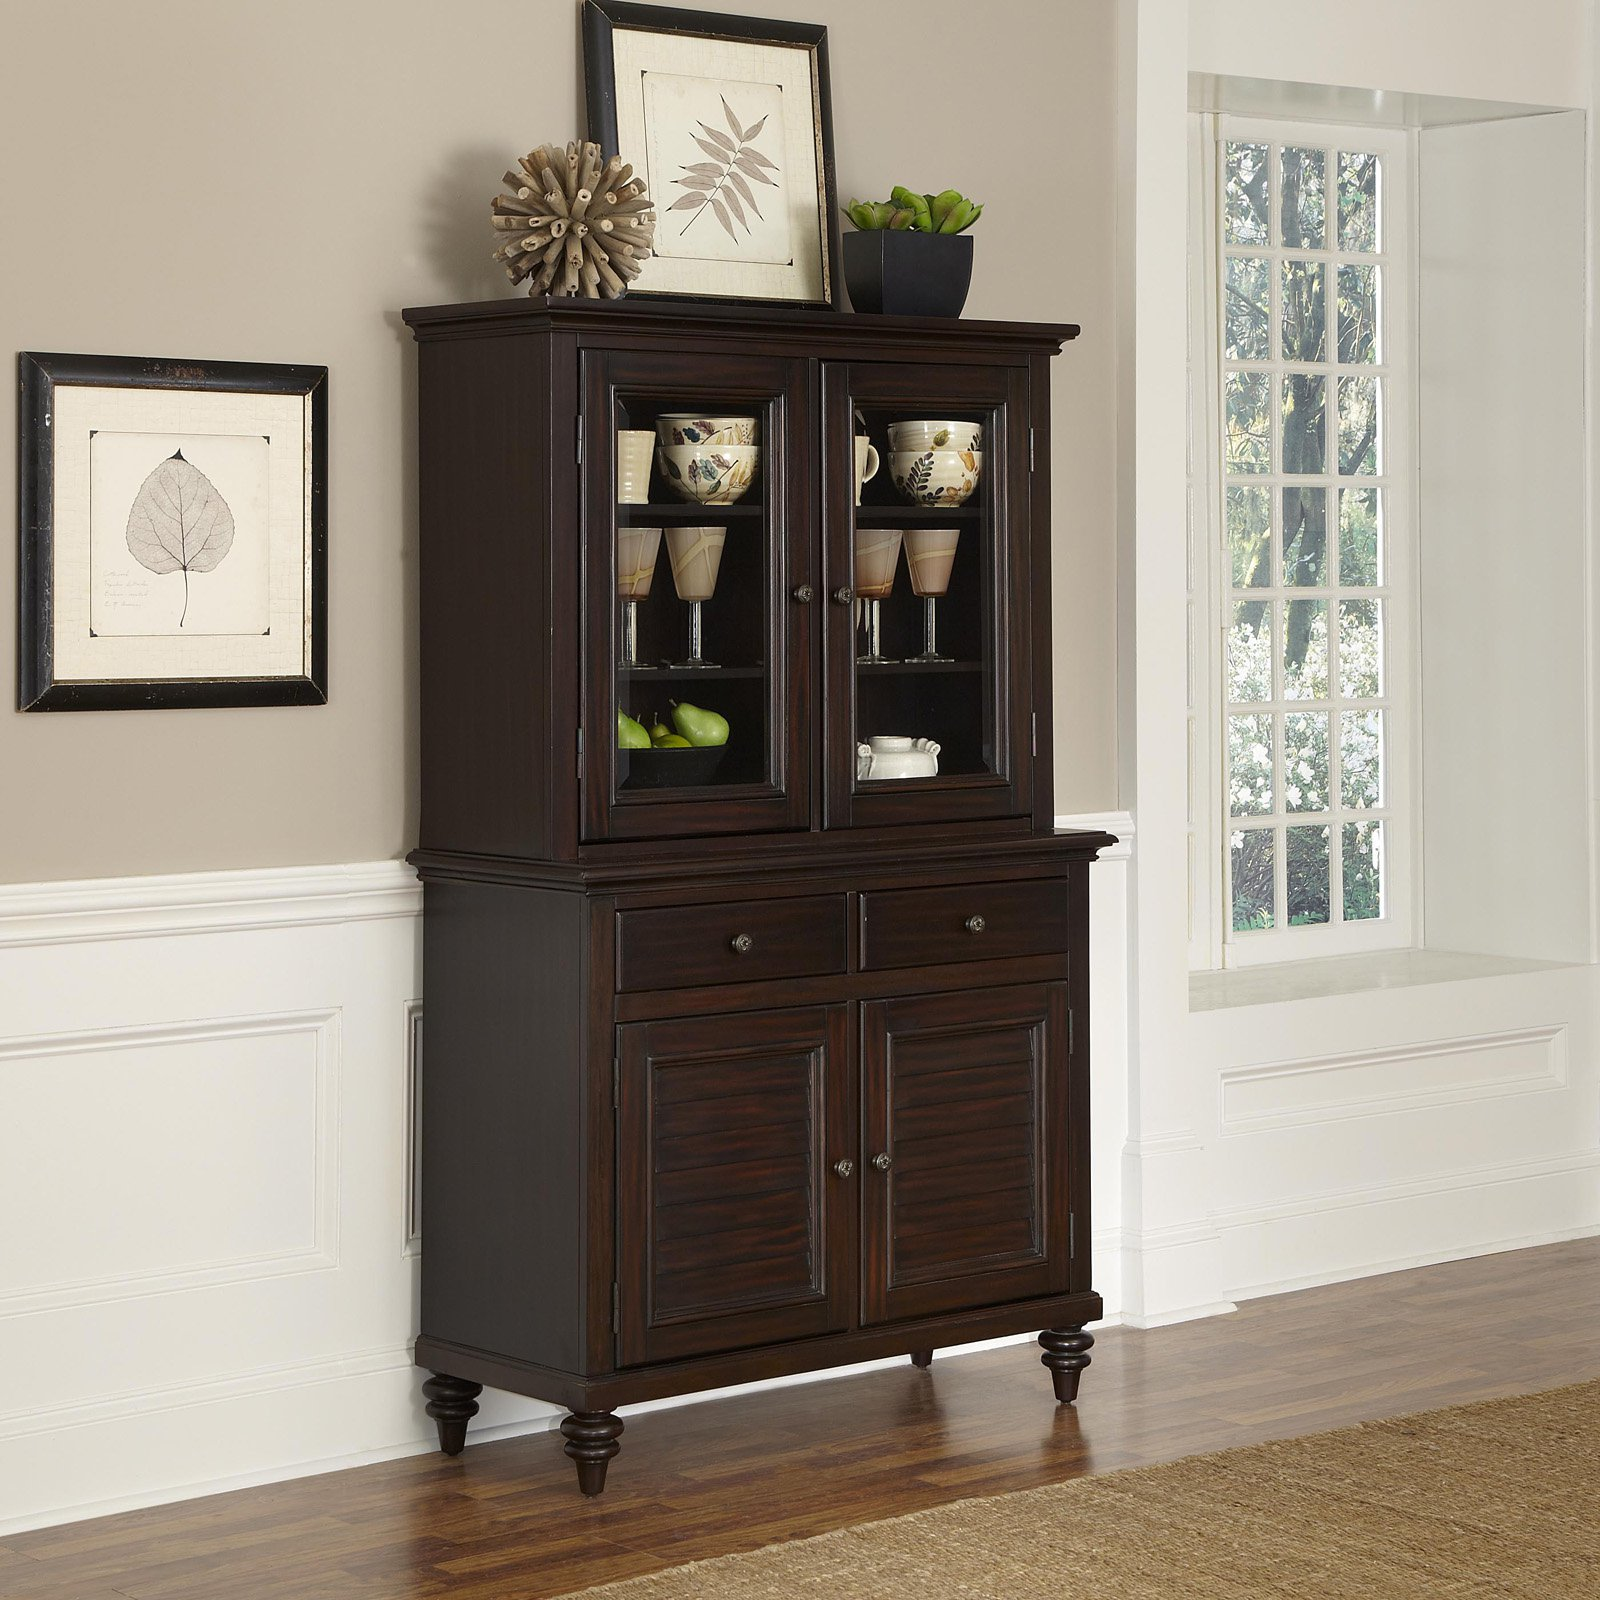 Image of: small china cabinets and hutches